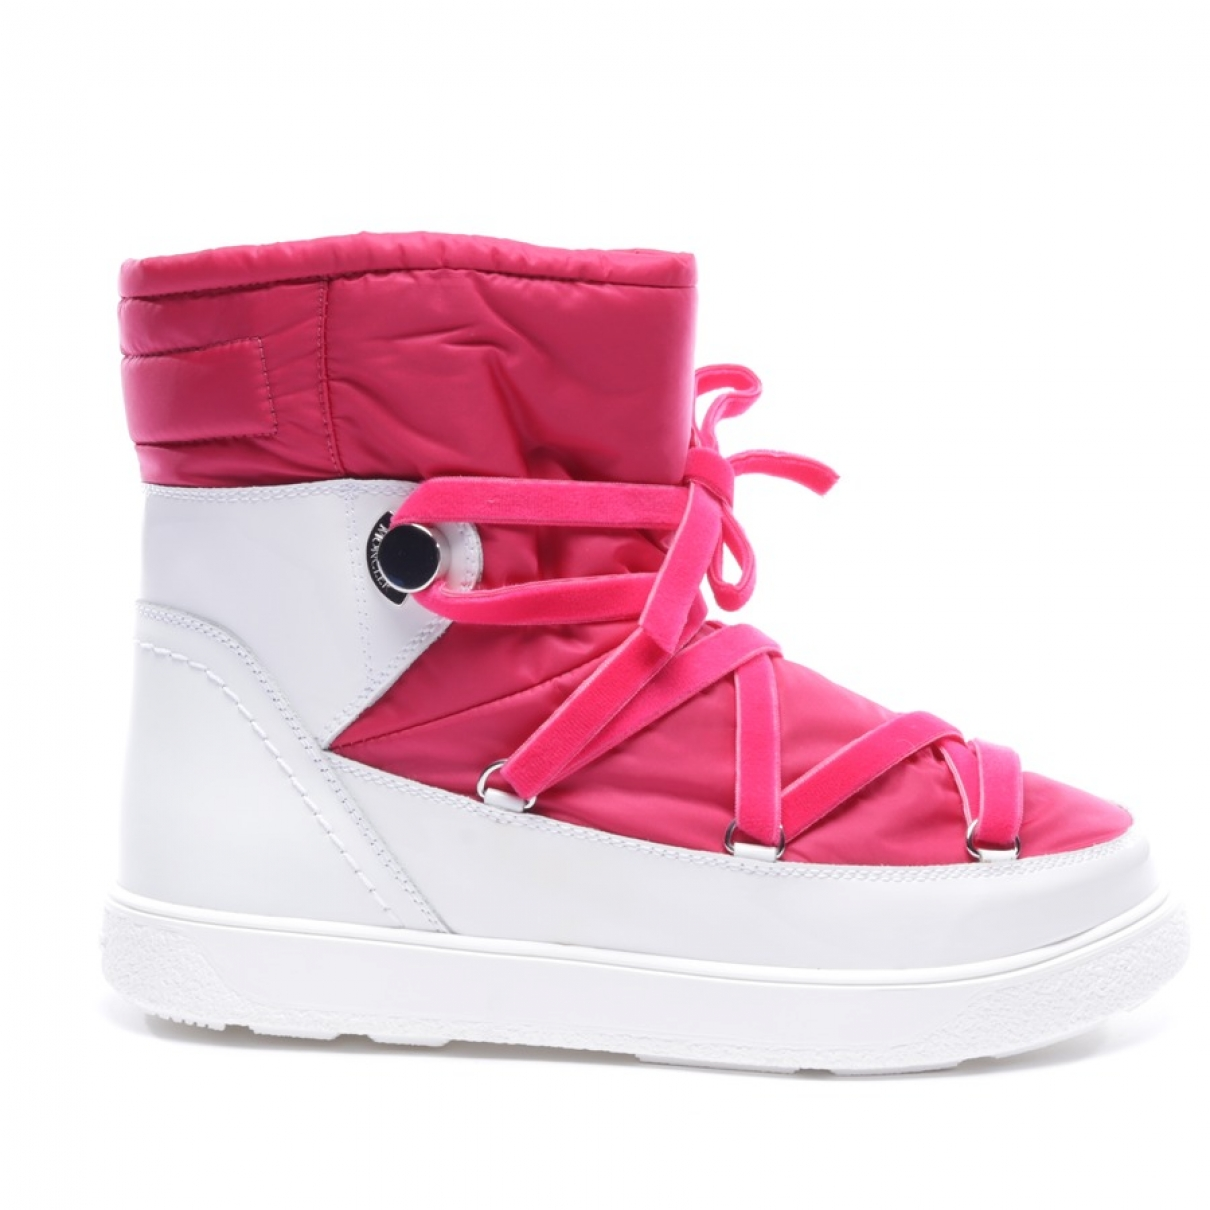 Moncler \N Pink Ankle boots for Women 40.5 EU